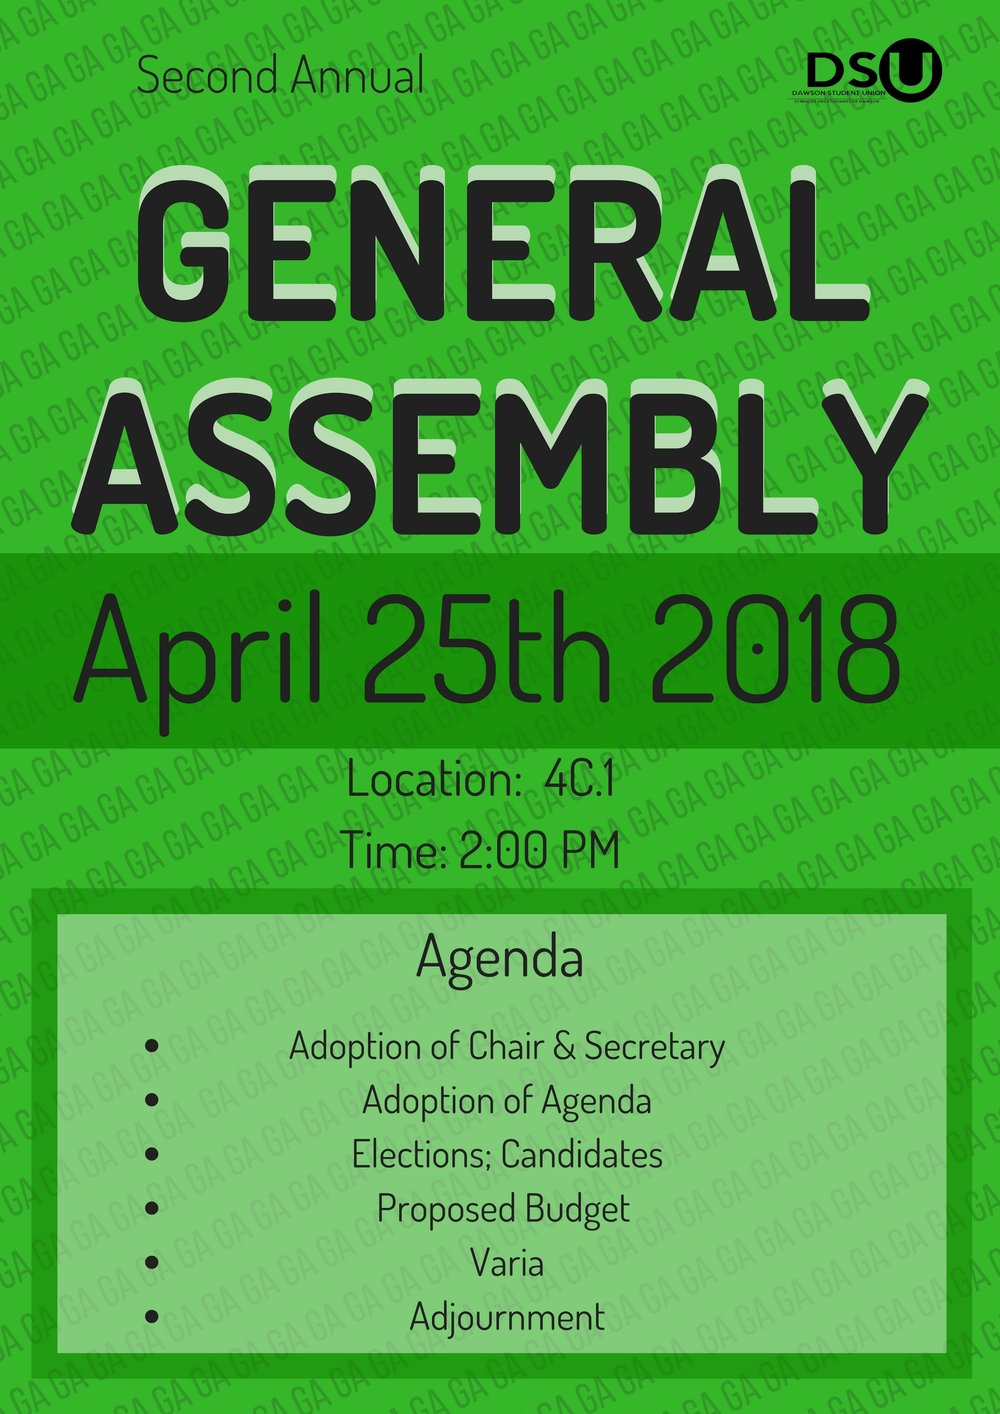 GENERAL ASSEMBLY - APRIL 25TH 2018 - 2:00PMJoin us in 4C.1 for the second annual General Assembly !